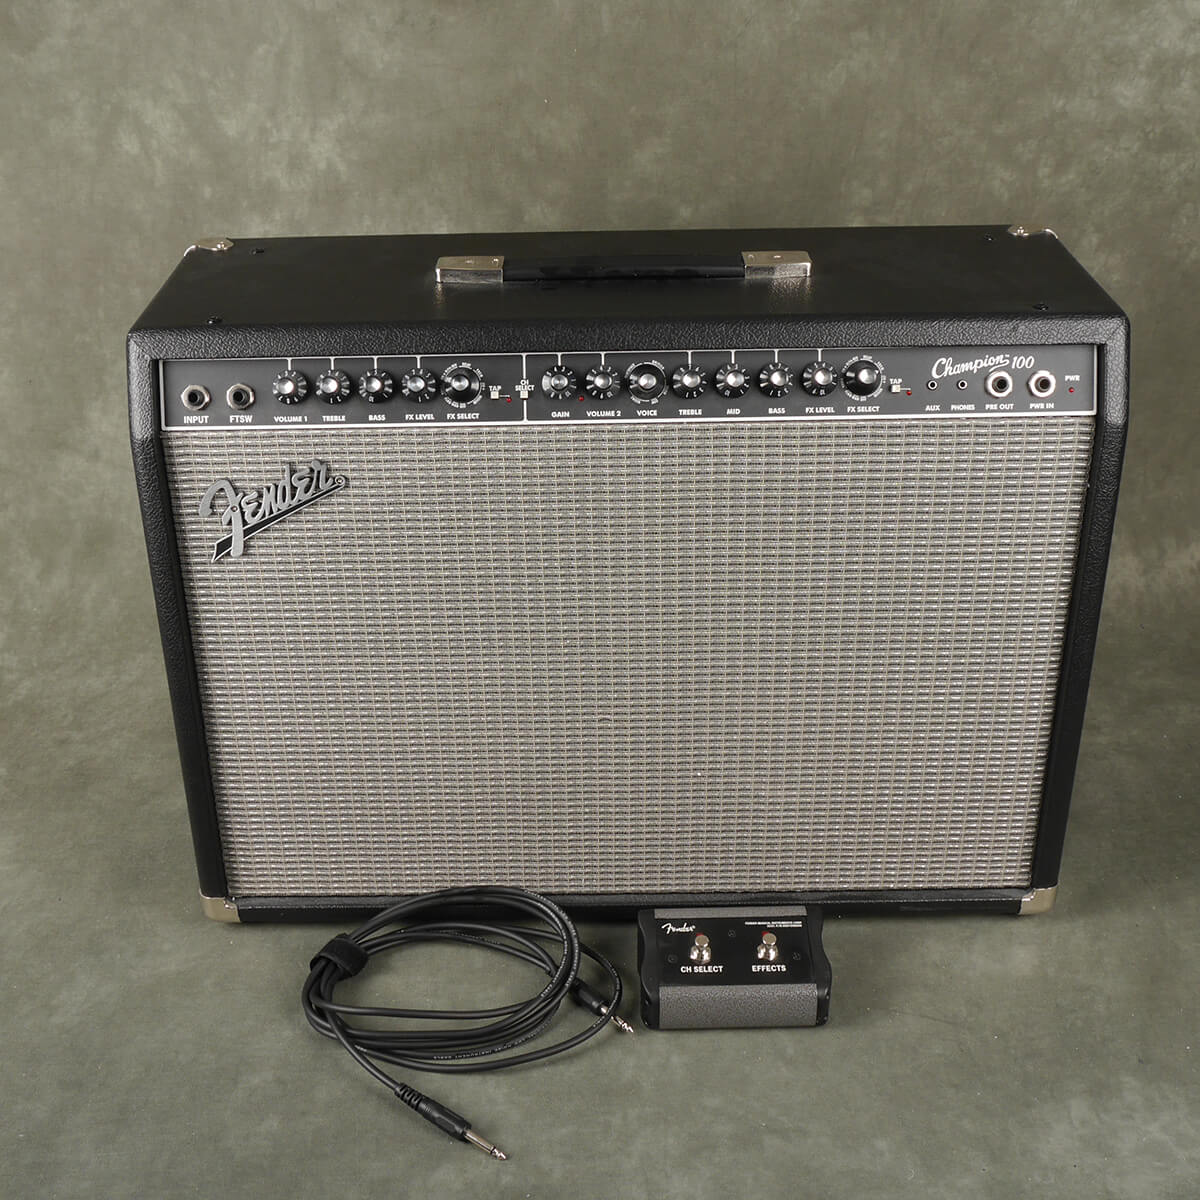 Fender Champion 100 Amplifier & Footswitch - 2nd Hand